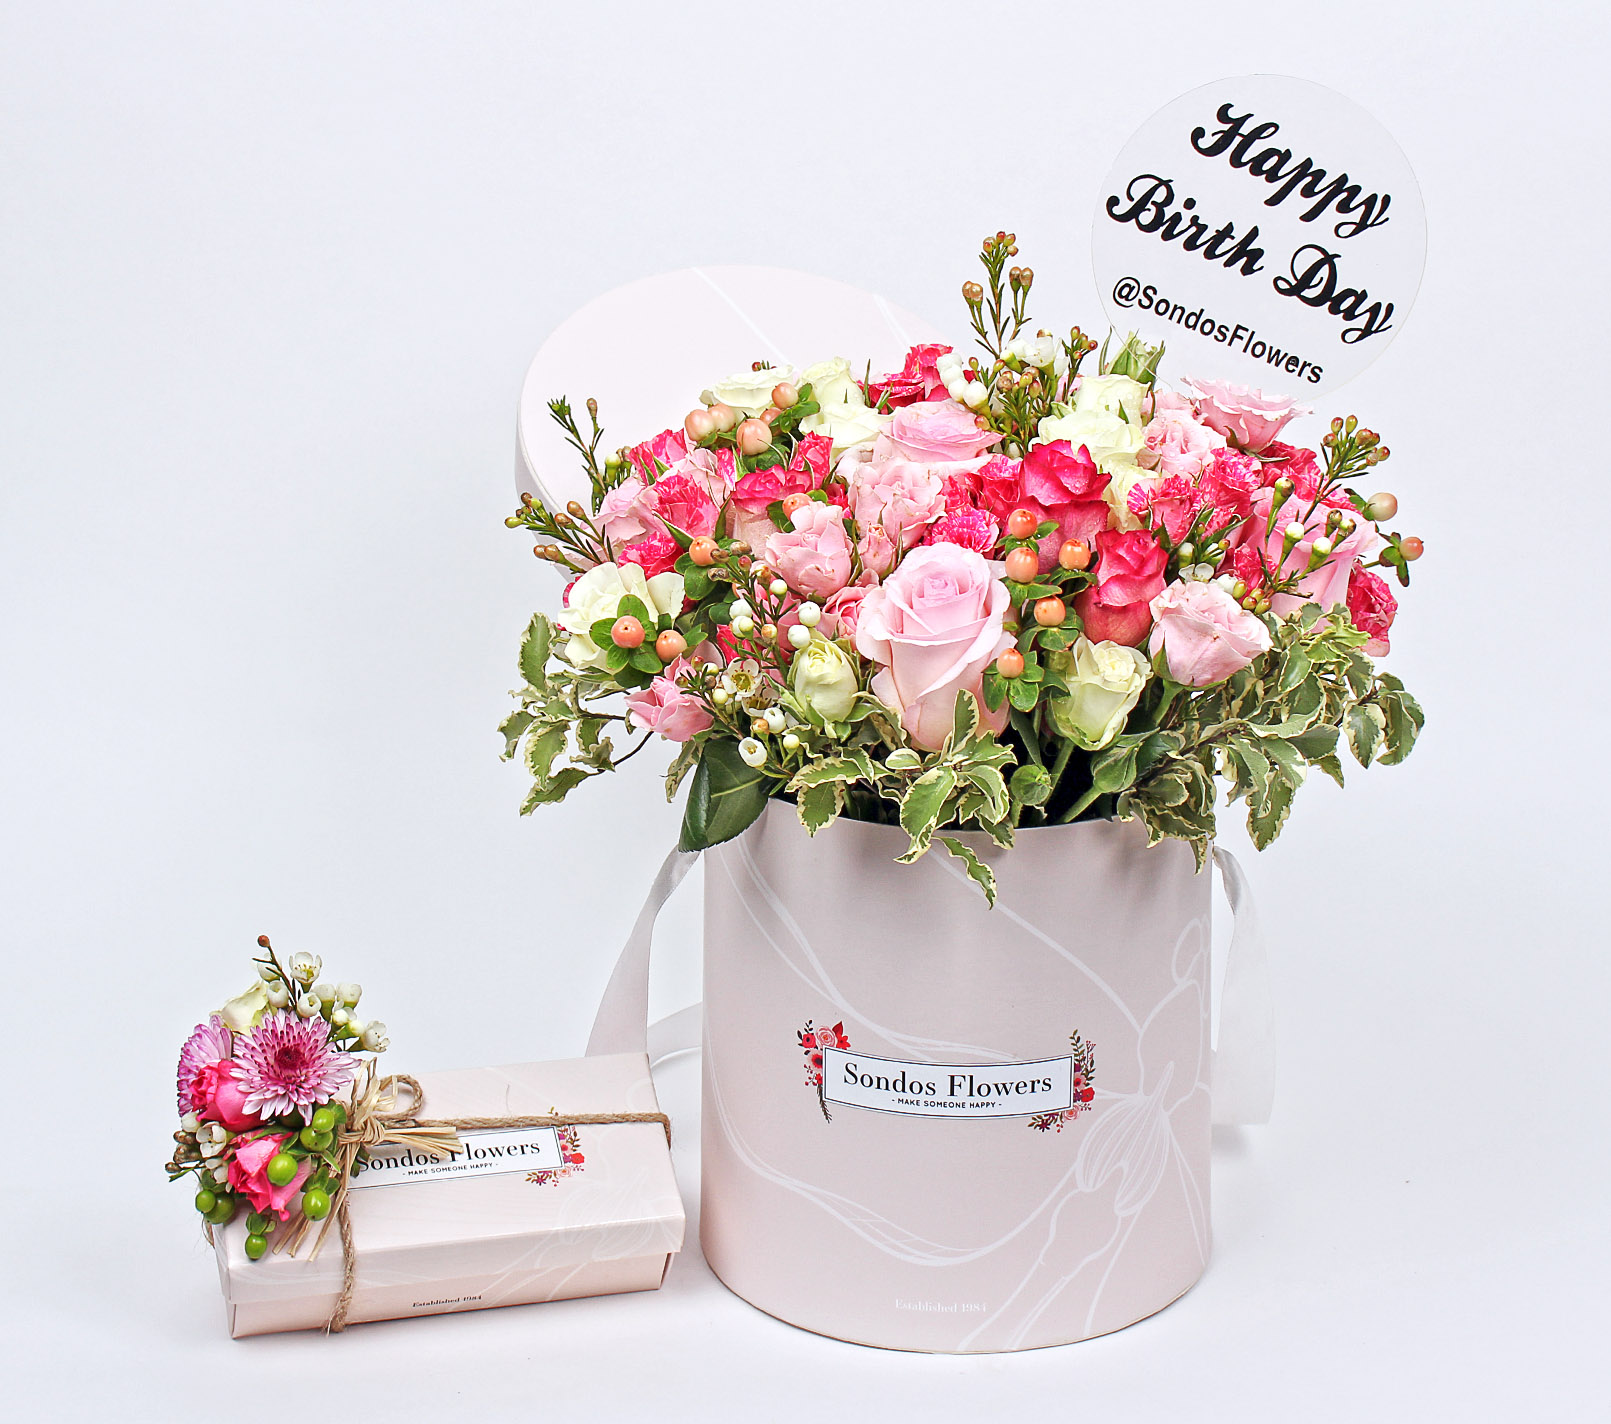 birthday flowers delivery kuwait  birthday flowers  occasion, Beautiful flower